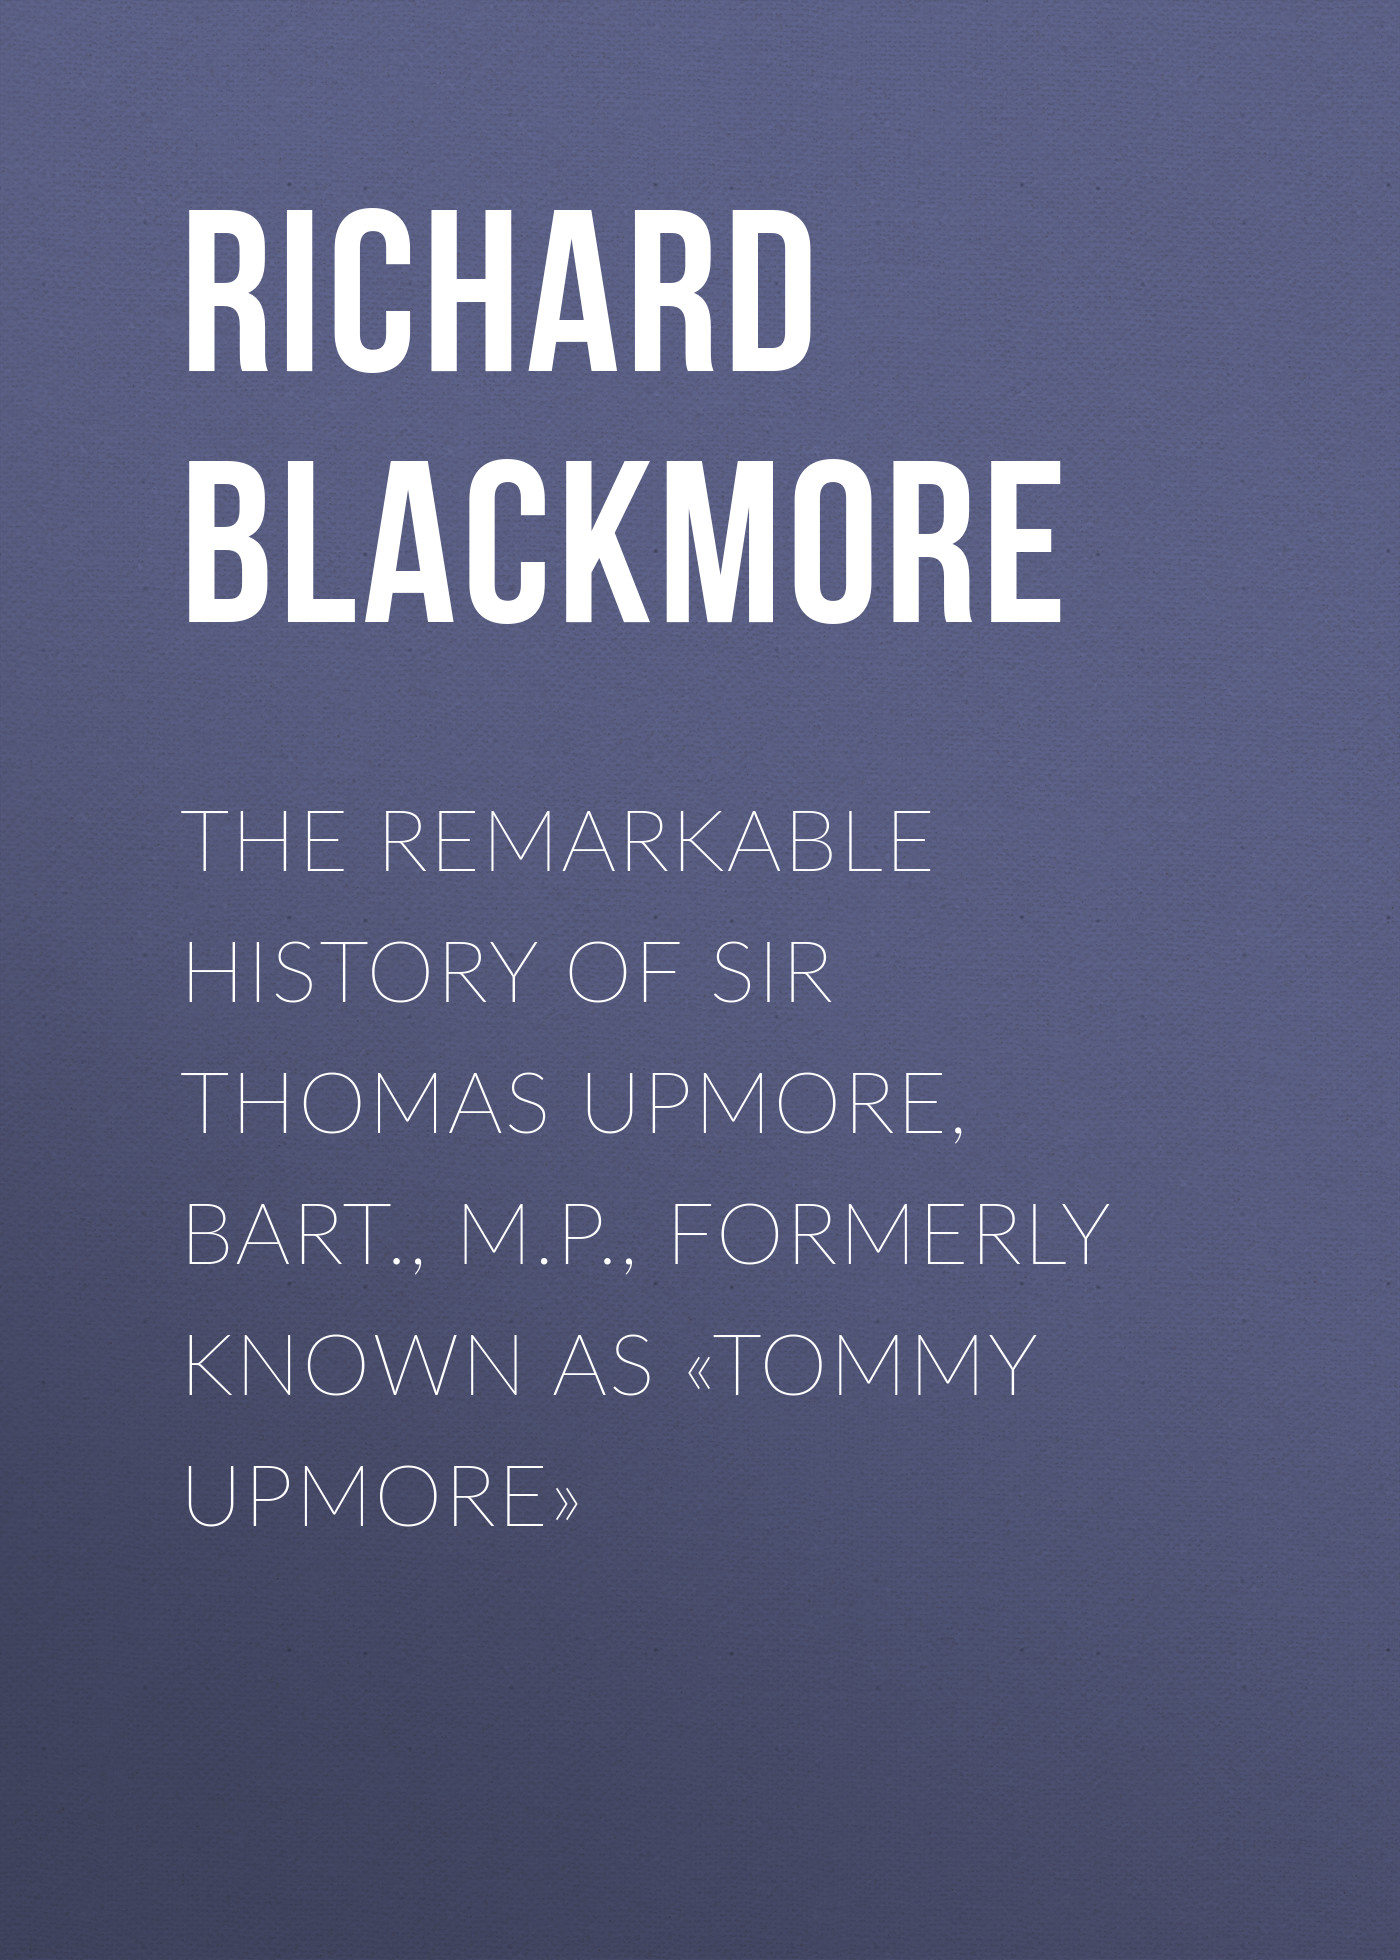 Blackmore Richard Doddridge The Remarkable History of Sir Thomas Upmore, bart., M.P., formerly known as «Tommy Upmore» blackmore richard doddridge cradock nowell a tale of the new forest volume 2 of 3